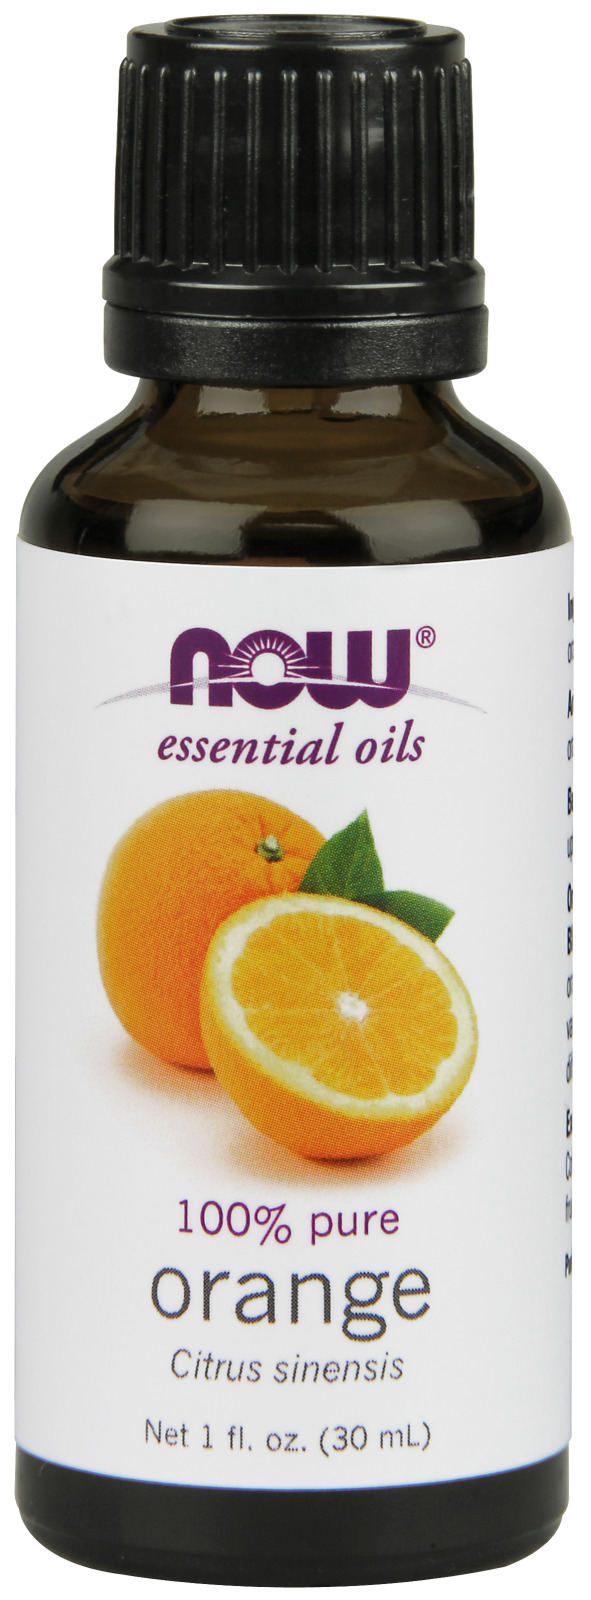 Orange Oil 1 fl oz (30 ml) by NOW